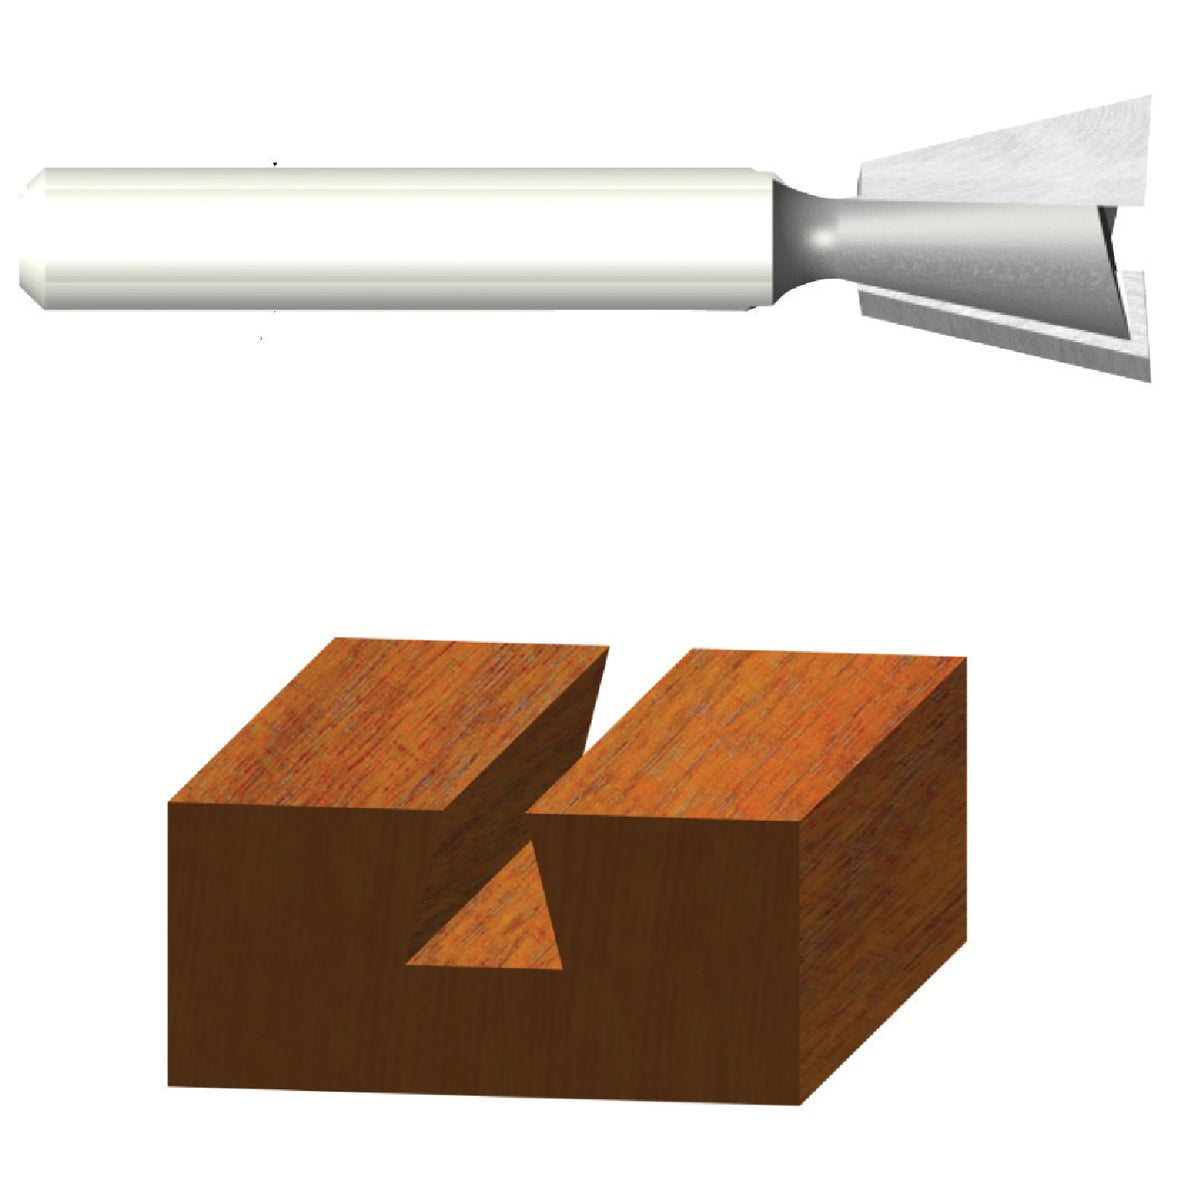 """9/16""""DOVETAIL ROUTER BIT - 23115 by Vermont American"""